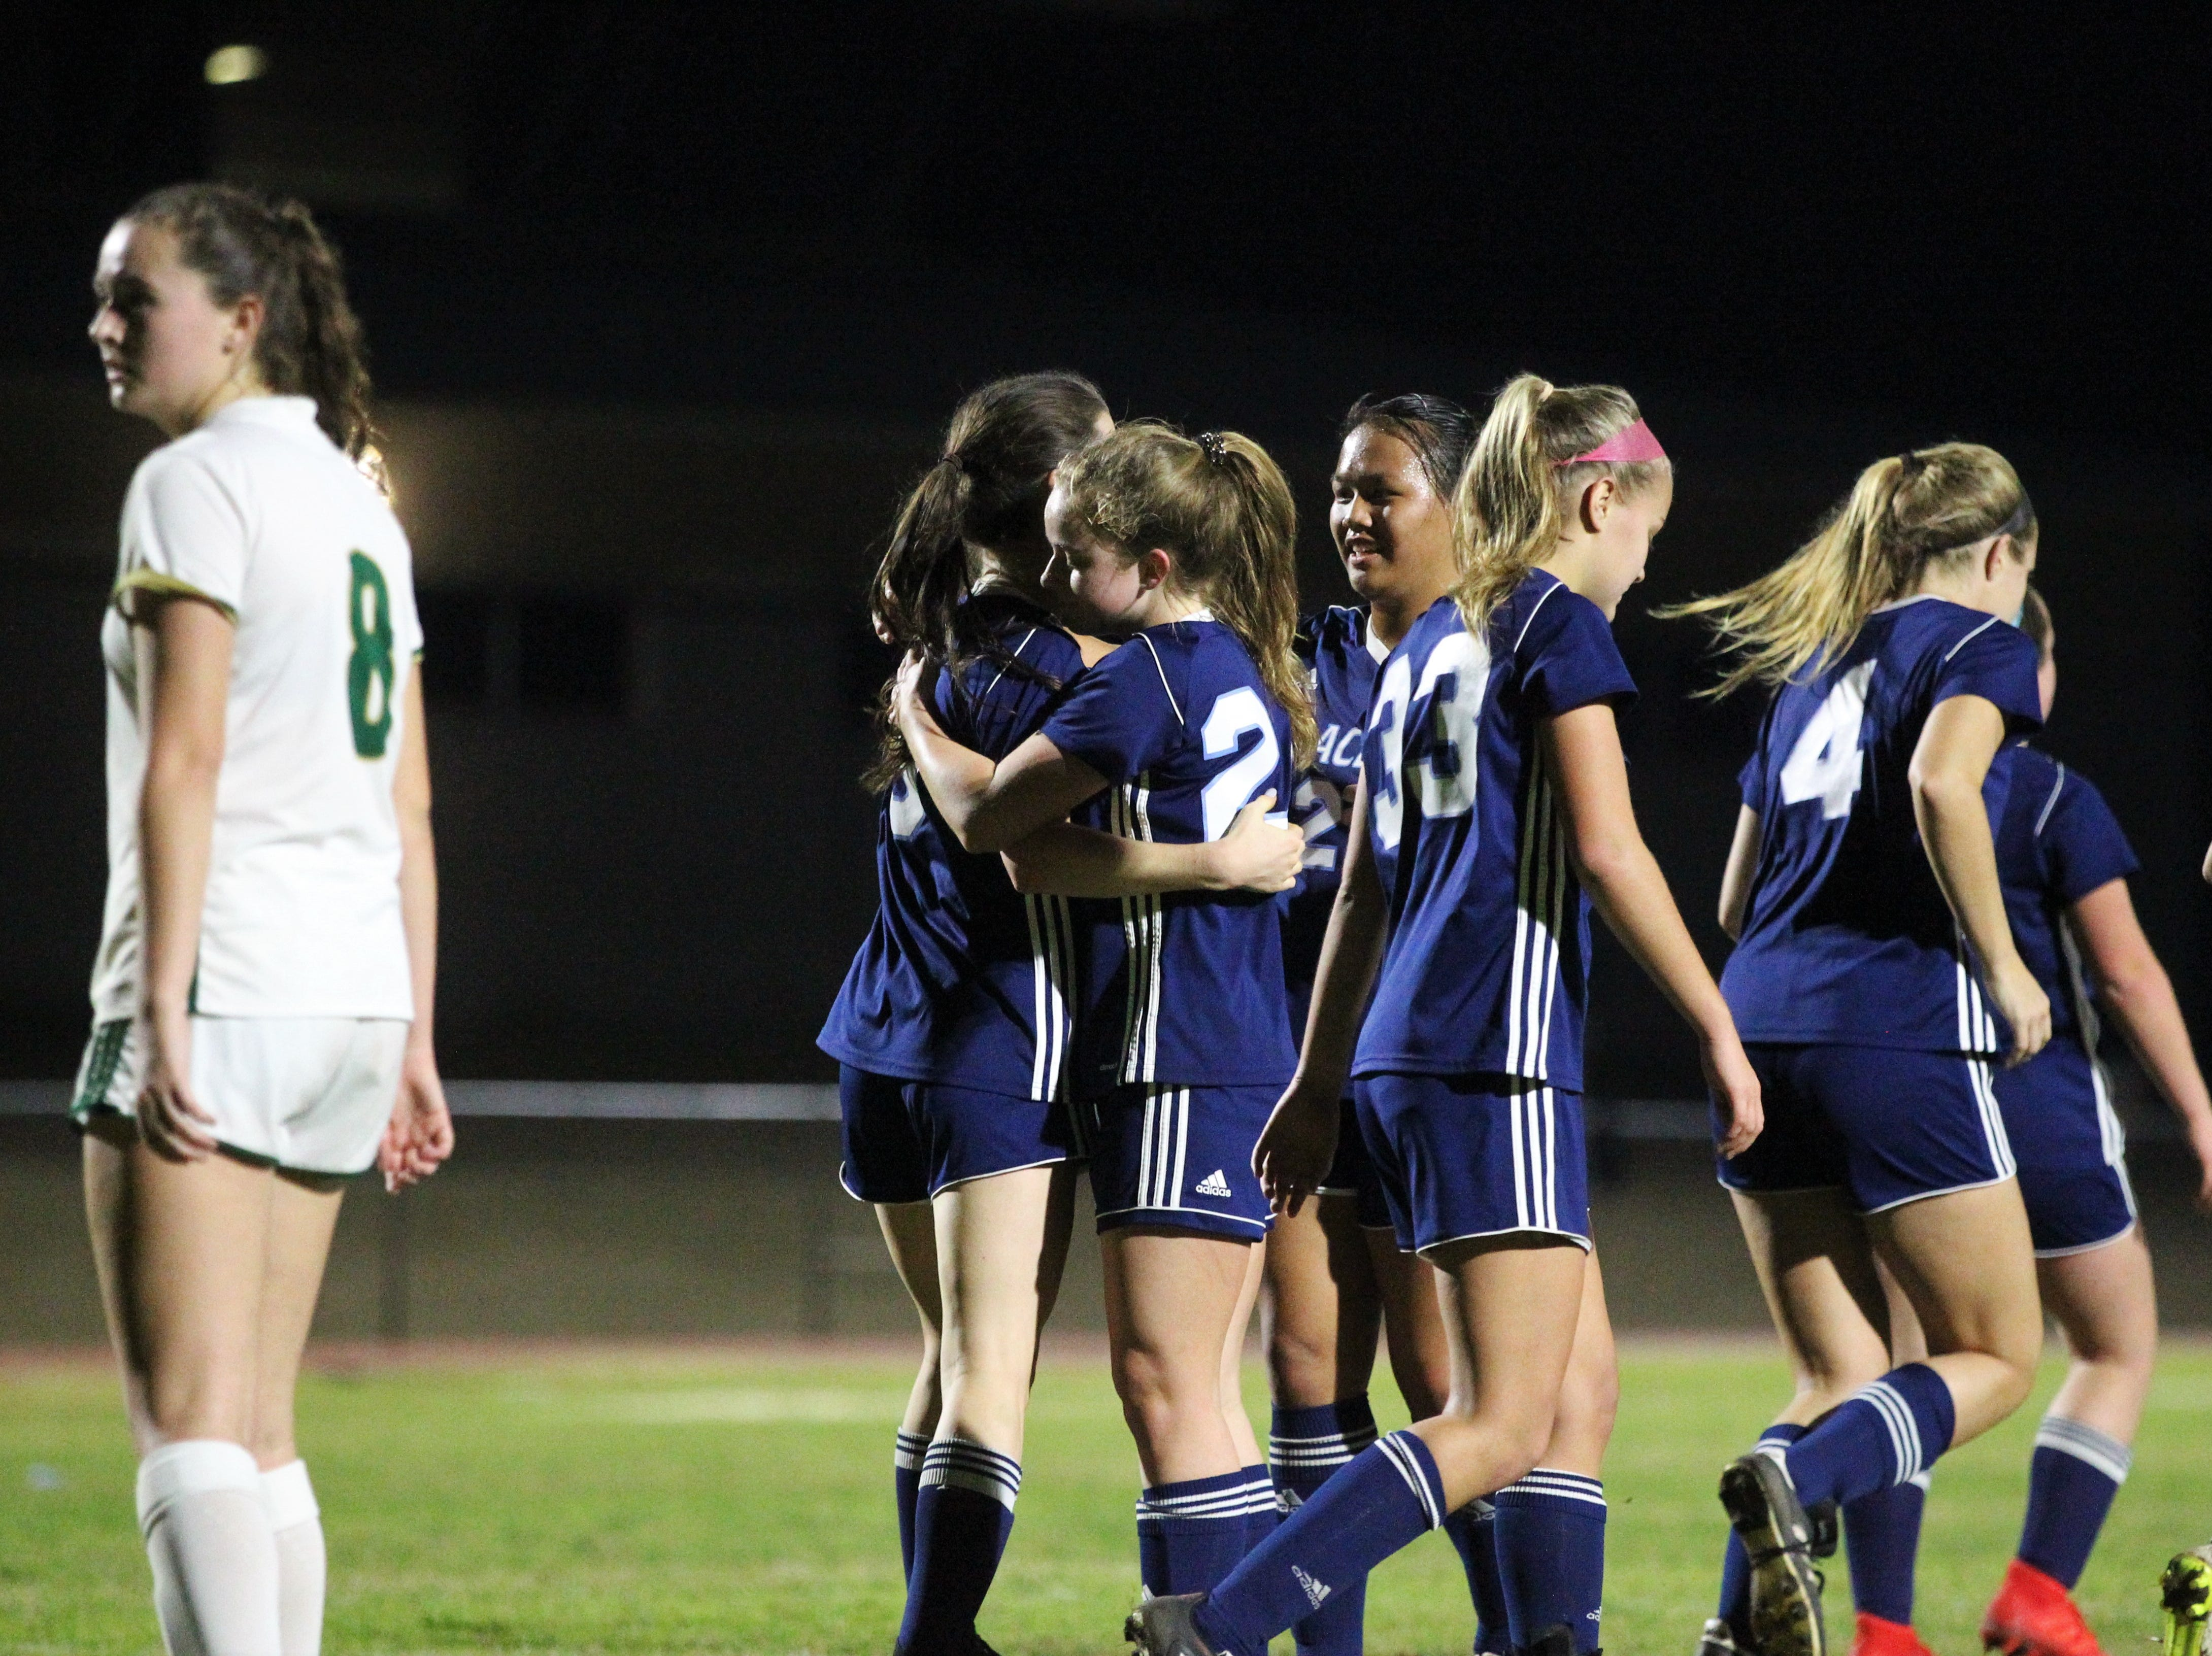 Maclay's Katie Lynch is hugged by teammates after scoring a goal as Maclay's girls soccer team beat St. Joseph Academy 4-0 in a Region 1-1A quarterfinal on Jan. 5, 2019.